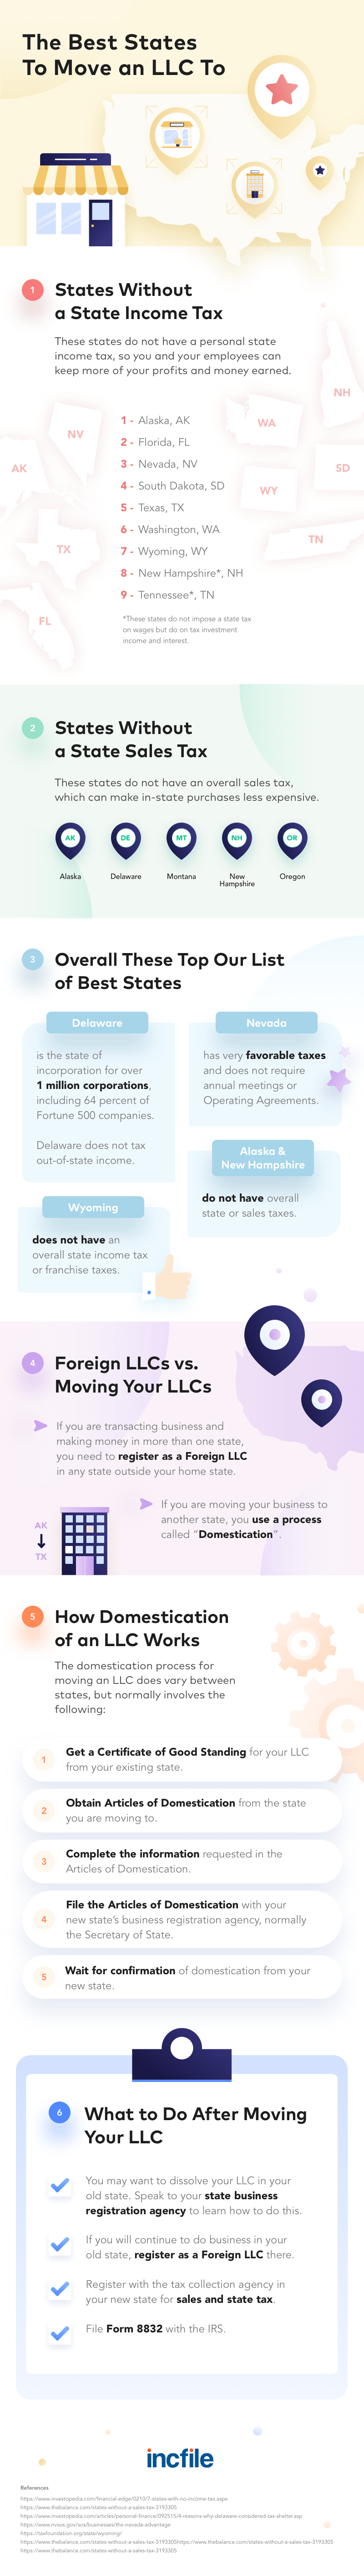 Moving Your LLC to Another State